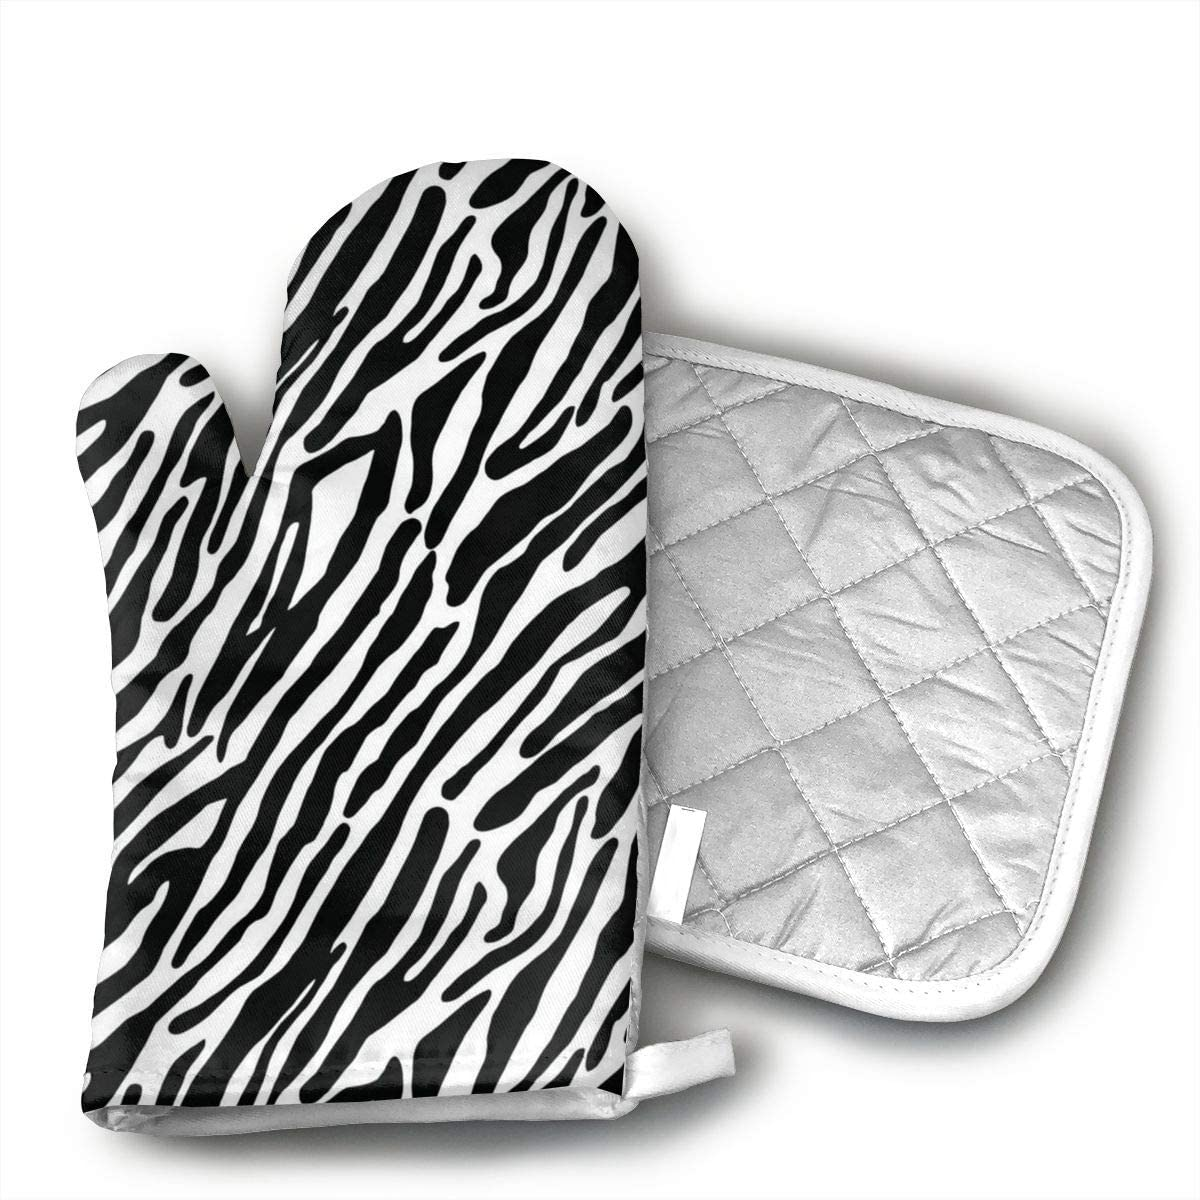 Zebra Pattern Oven Mitts and Potholders (2-Piece Sets) - Kitchen Set with Cotton Heat Resistant,Oven Gloves for BBQ Cooking Baking Grilling